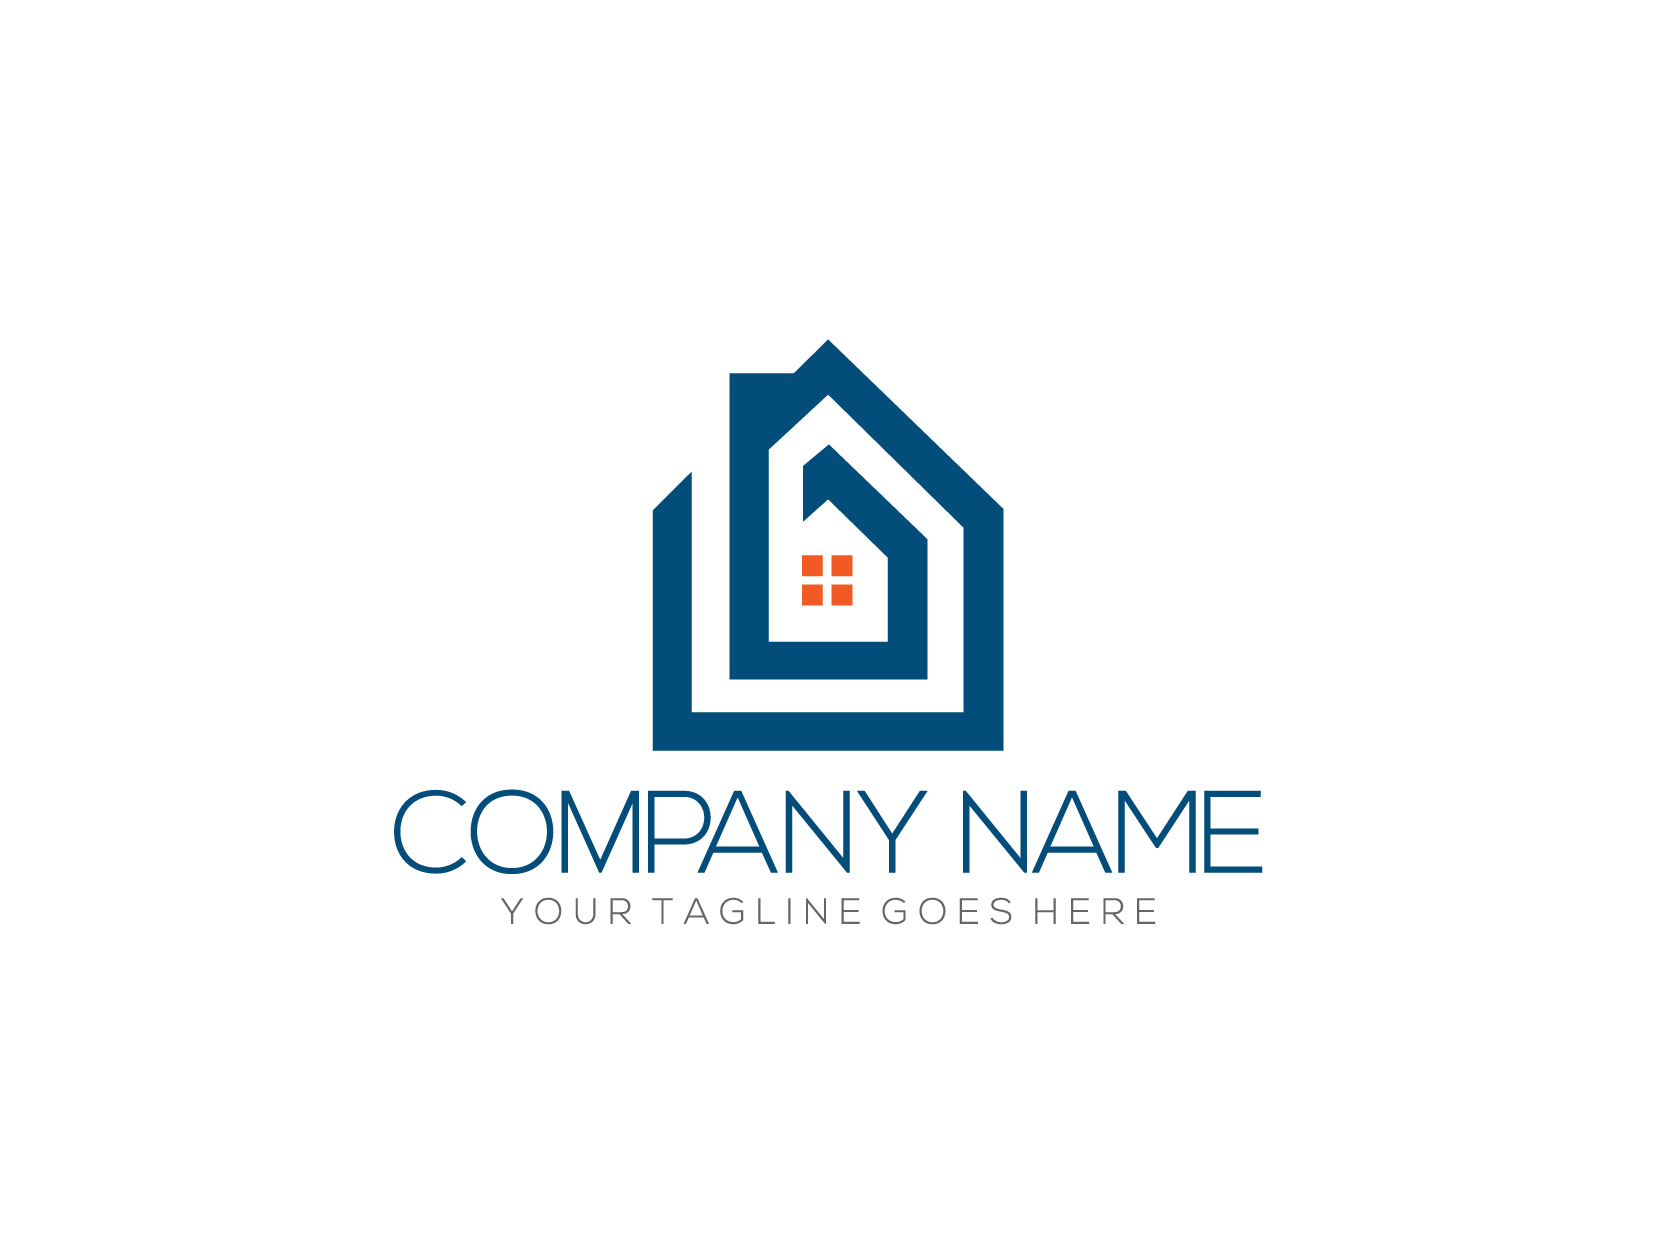 Simple homes by Nurul Muflihun  a perfect logo for Real Estate & Mortgage